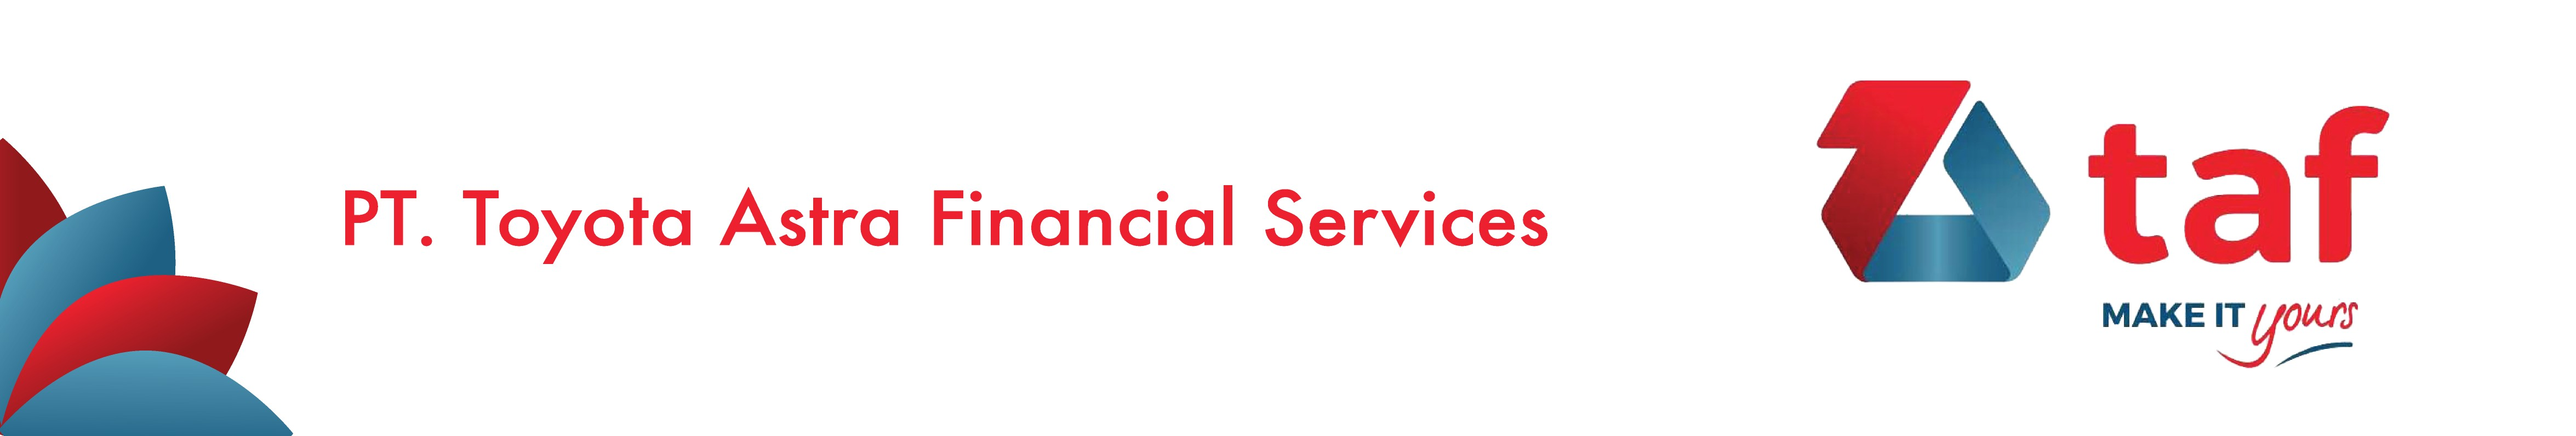 Pt Toyota Astra Financial Services Linkedin